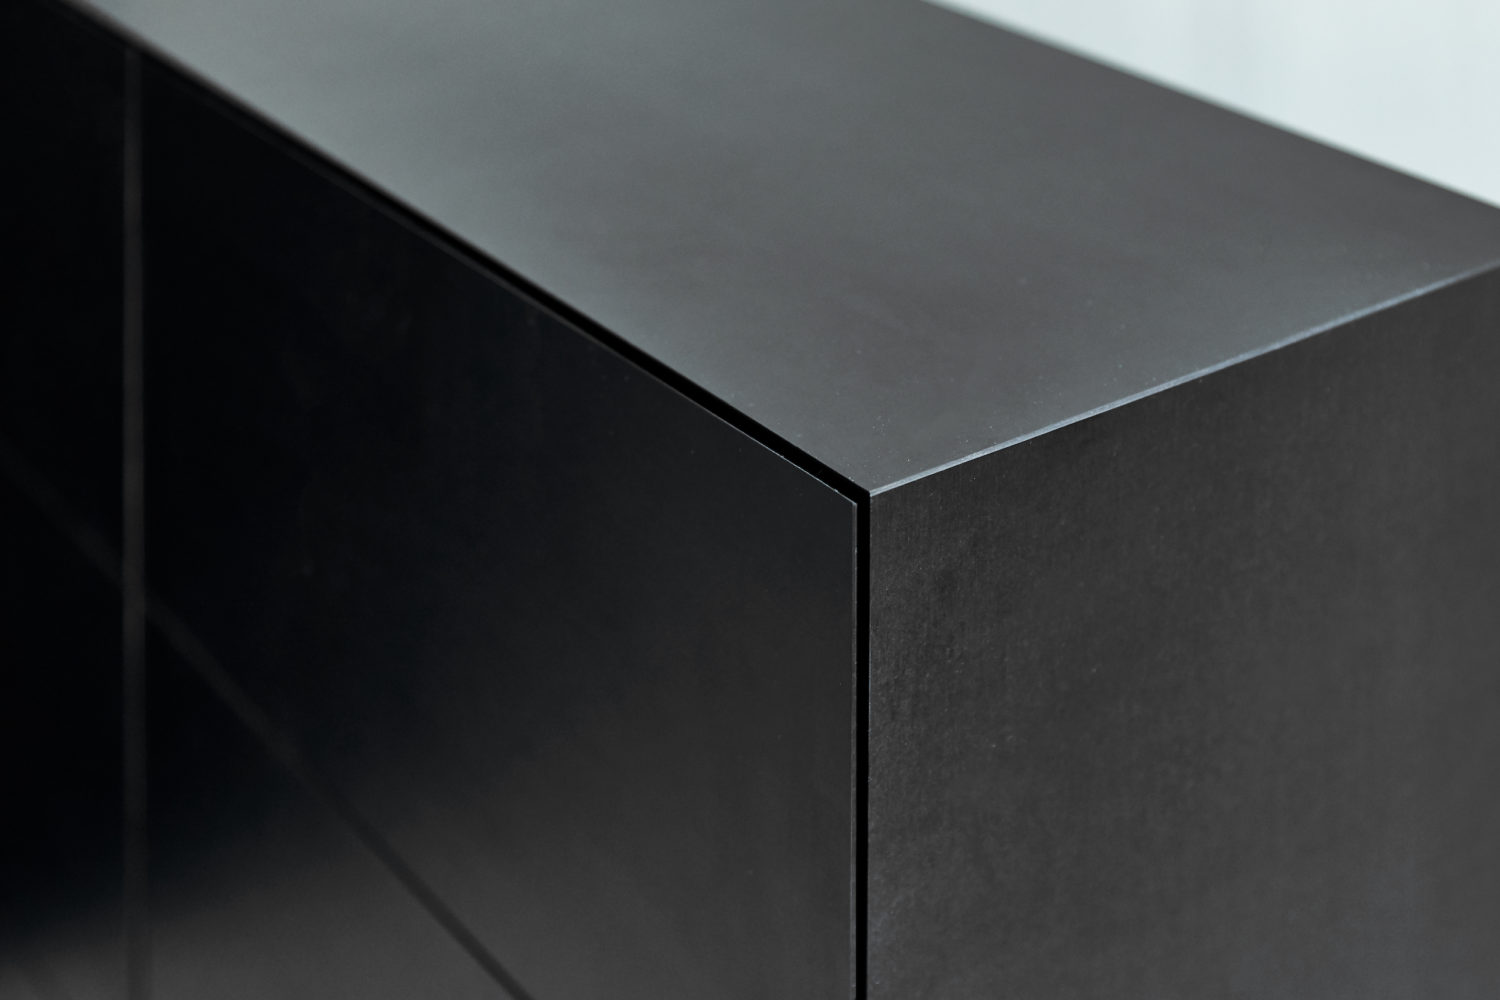 sideboard ALL BLACK